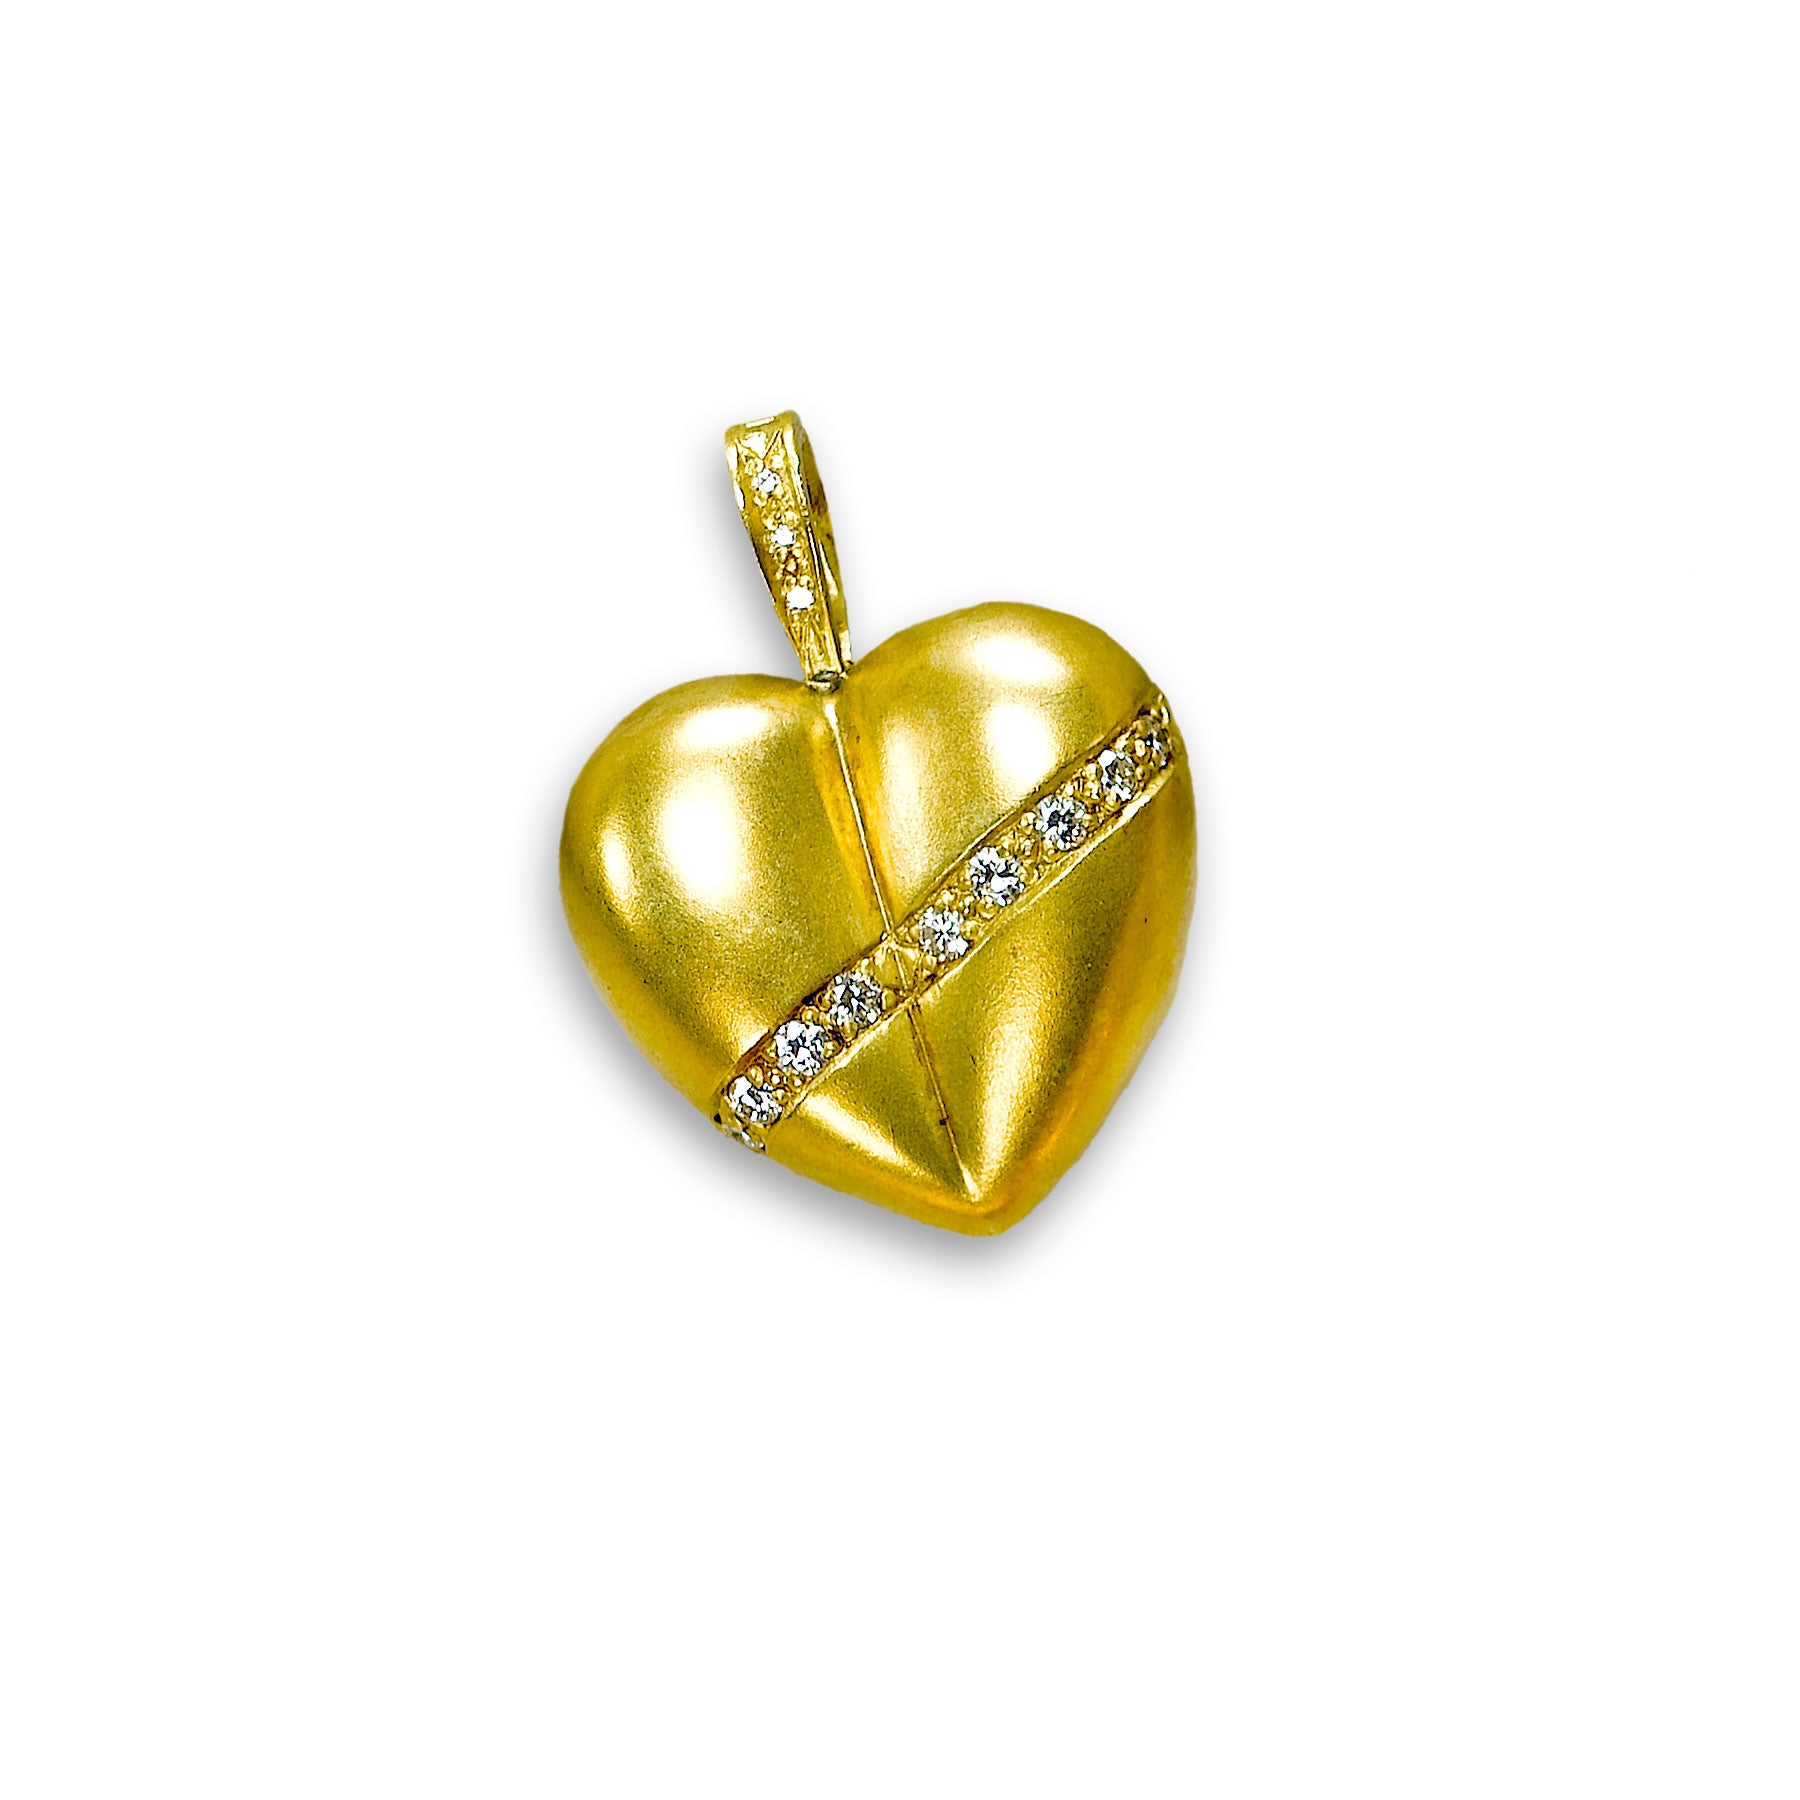 Heart Clipover Pendant with Diamonds, 18K Yellow Gold